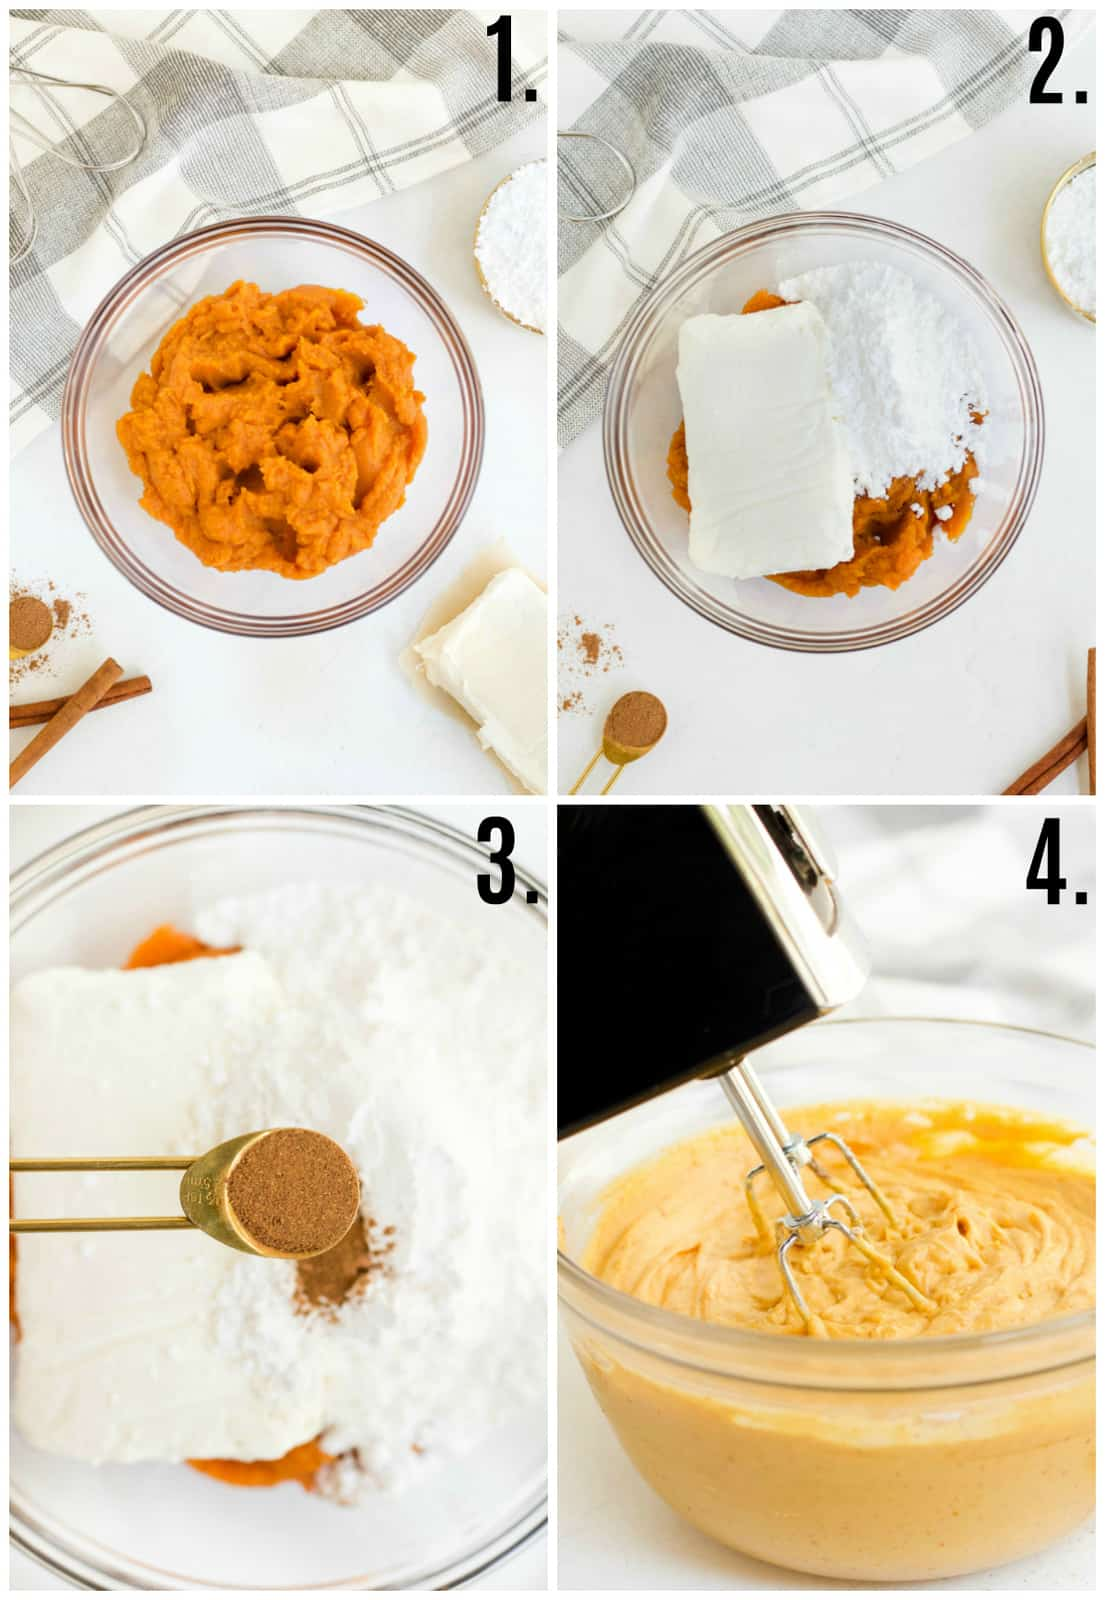 Step by step photos on how to make Pumpkin Dip